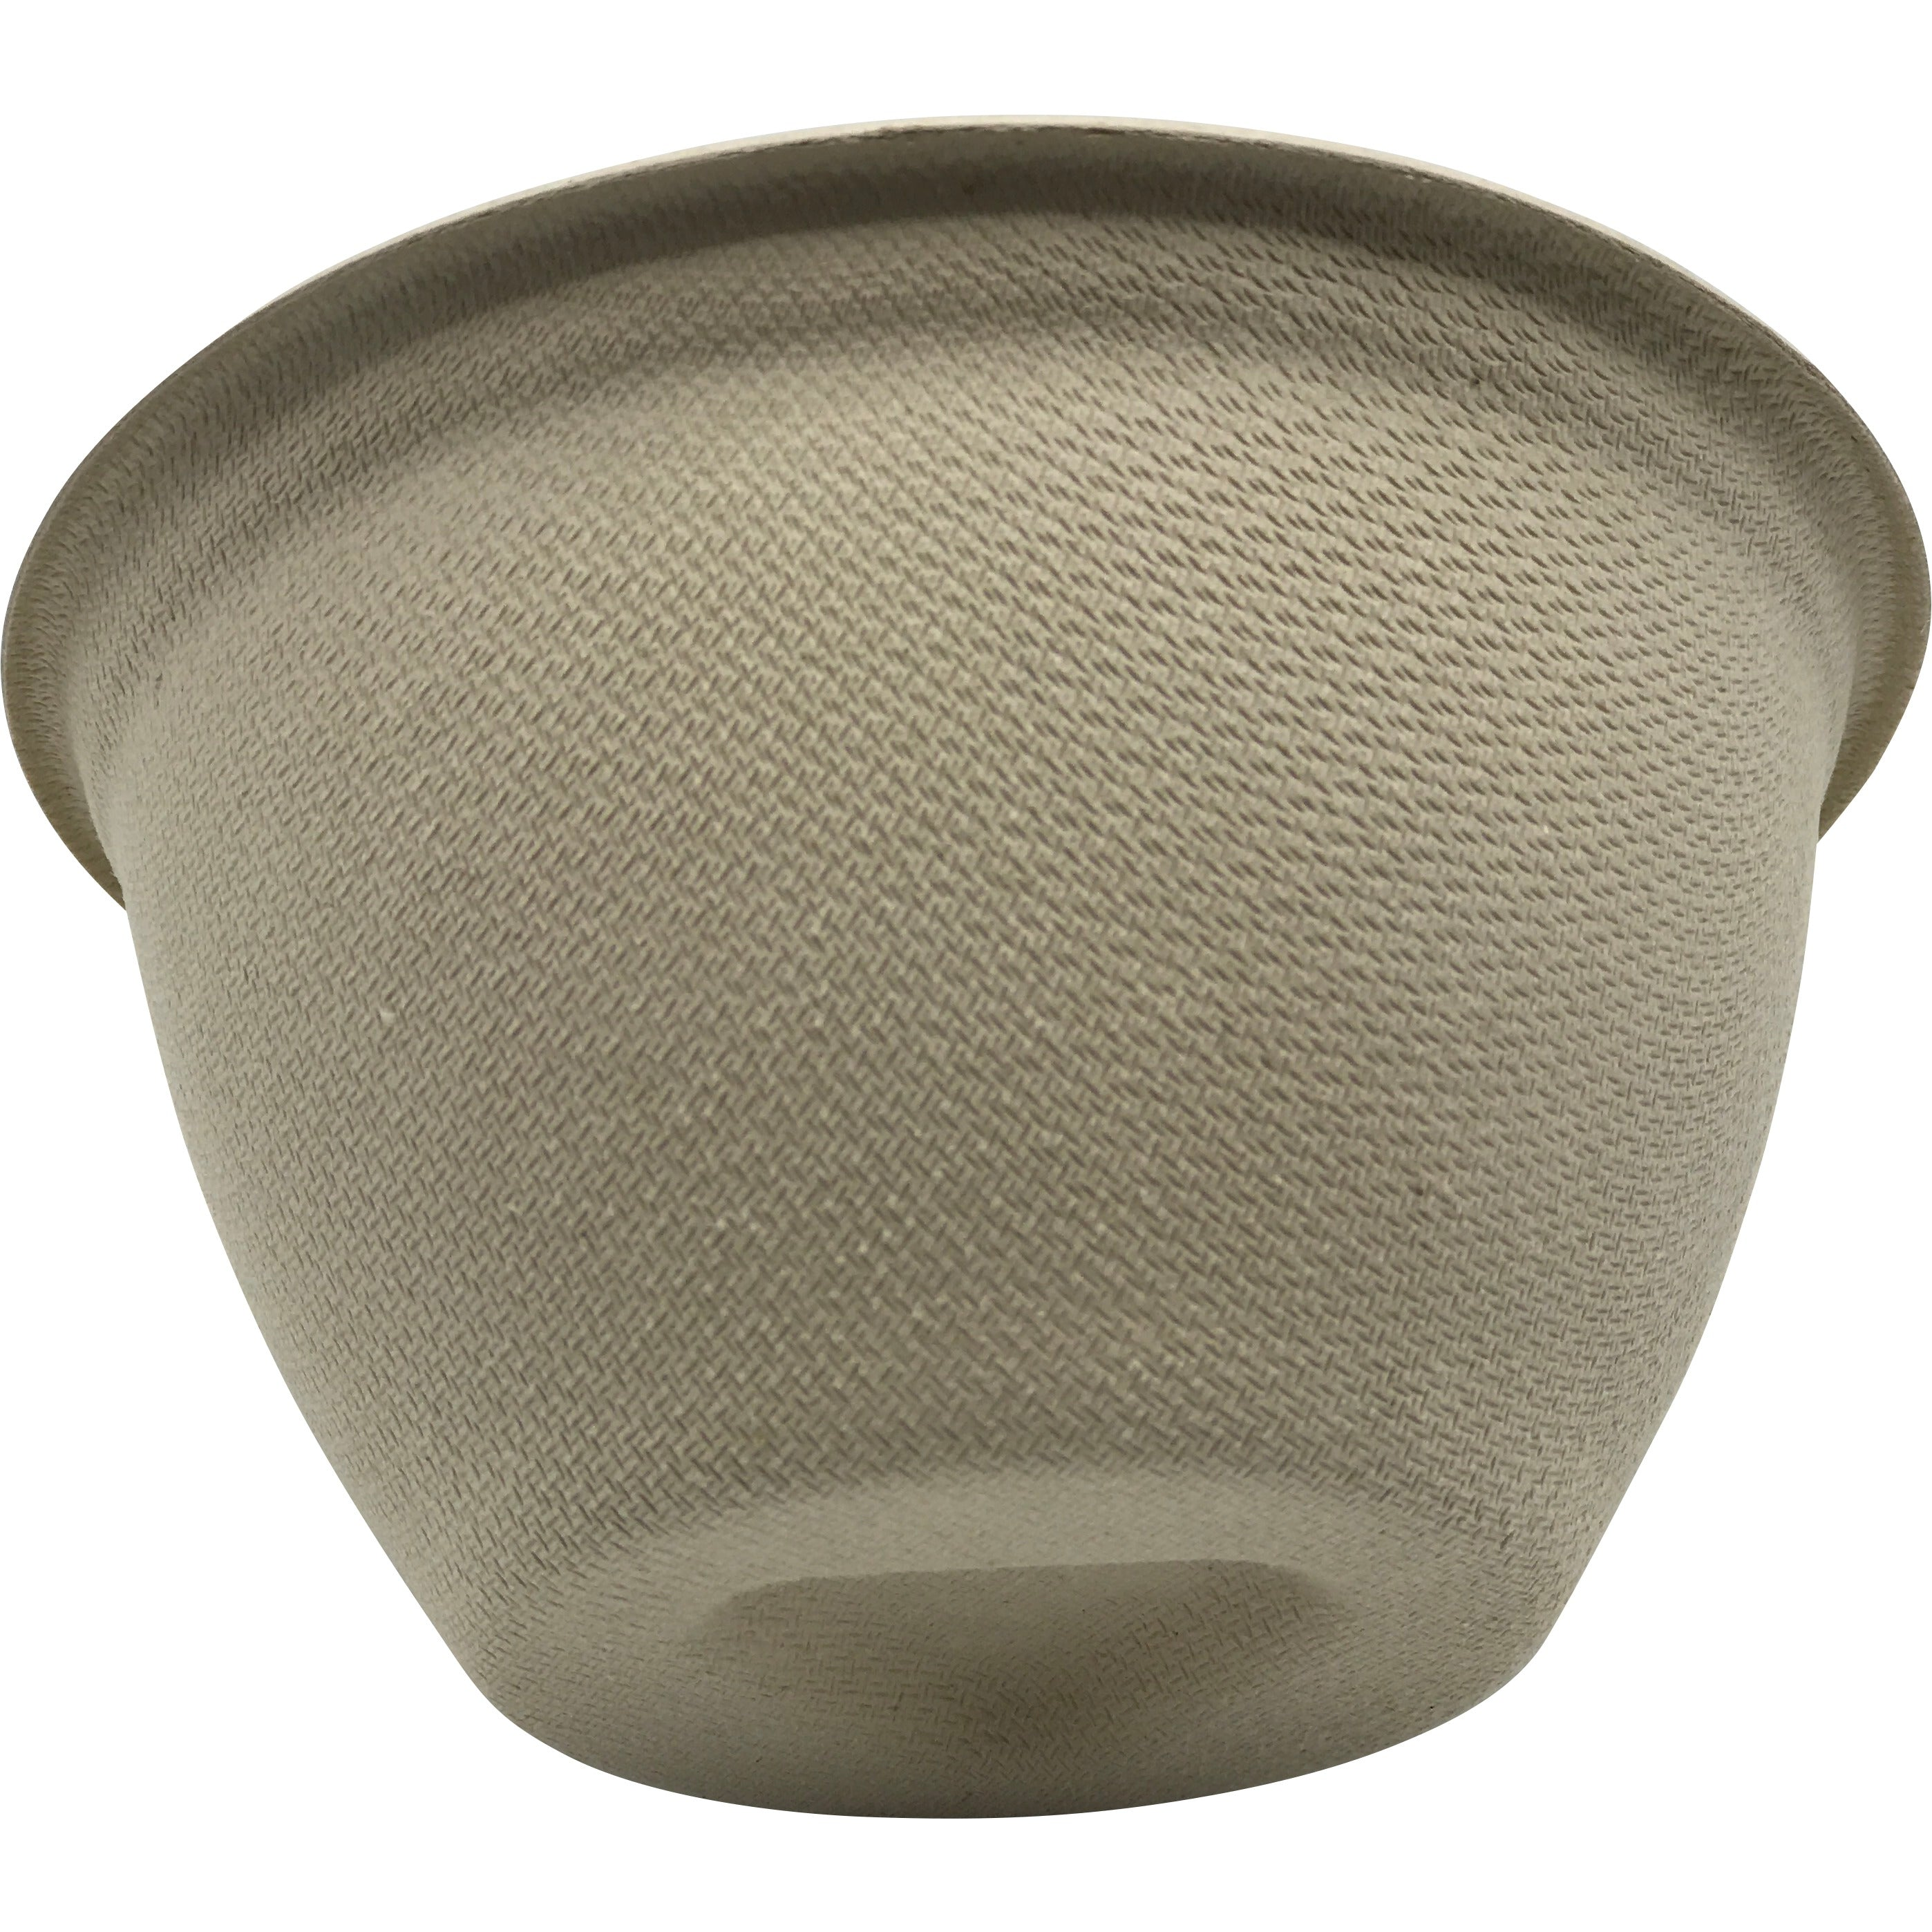 Biodegradable Plant Fiber Barrel Bowl 12 oz - IcySkyy